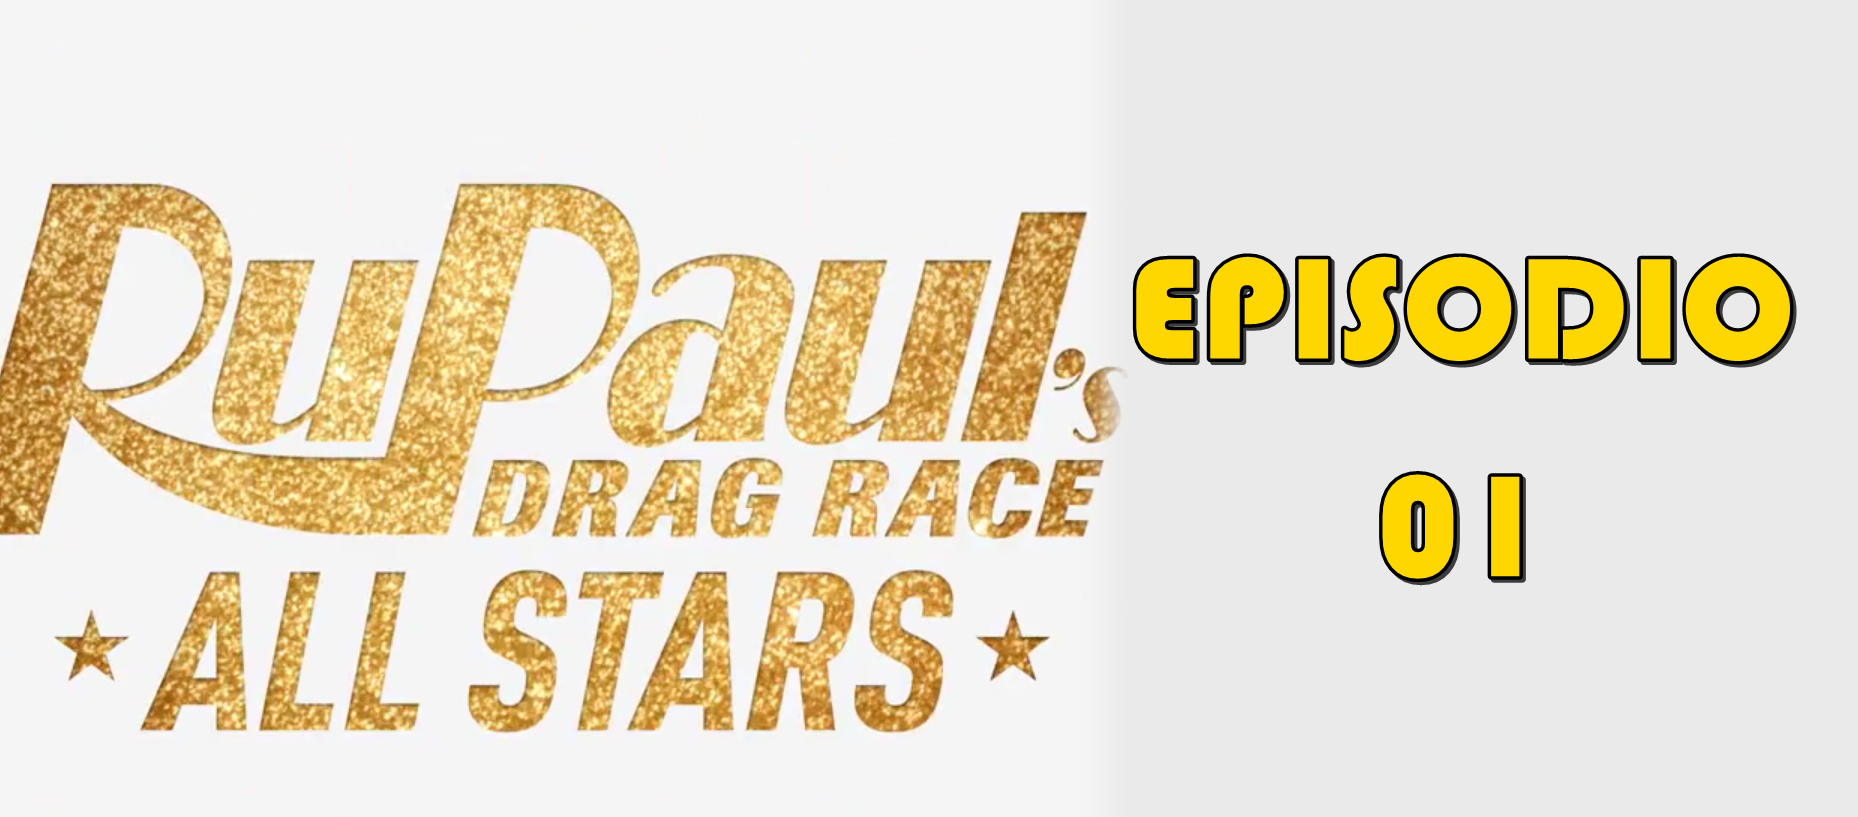 Rupaul´s Drag Race All Stars 3 Episodio 01